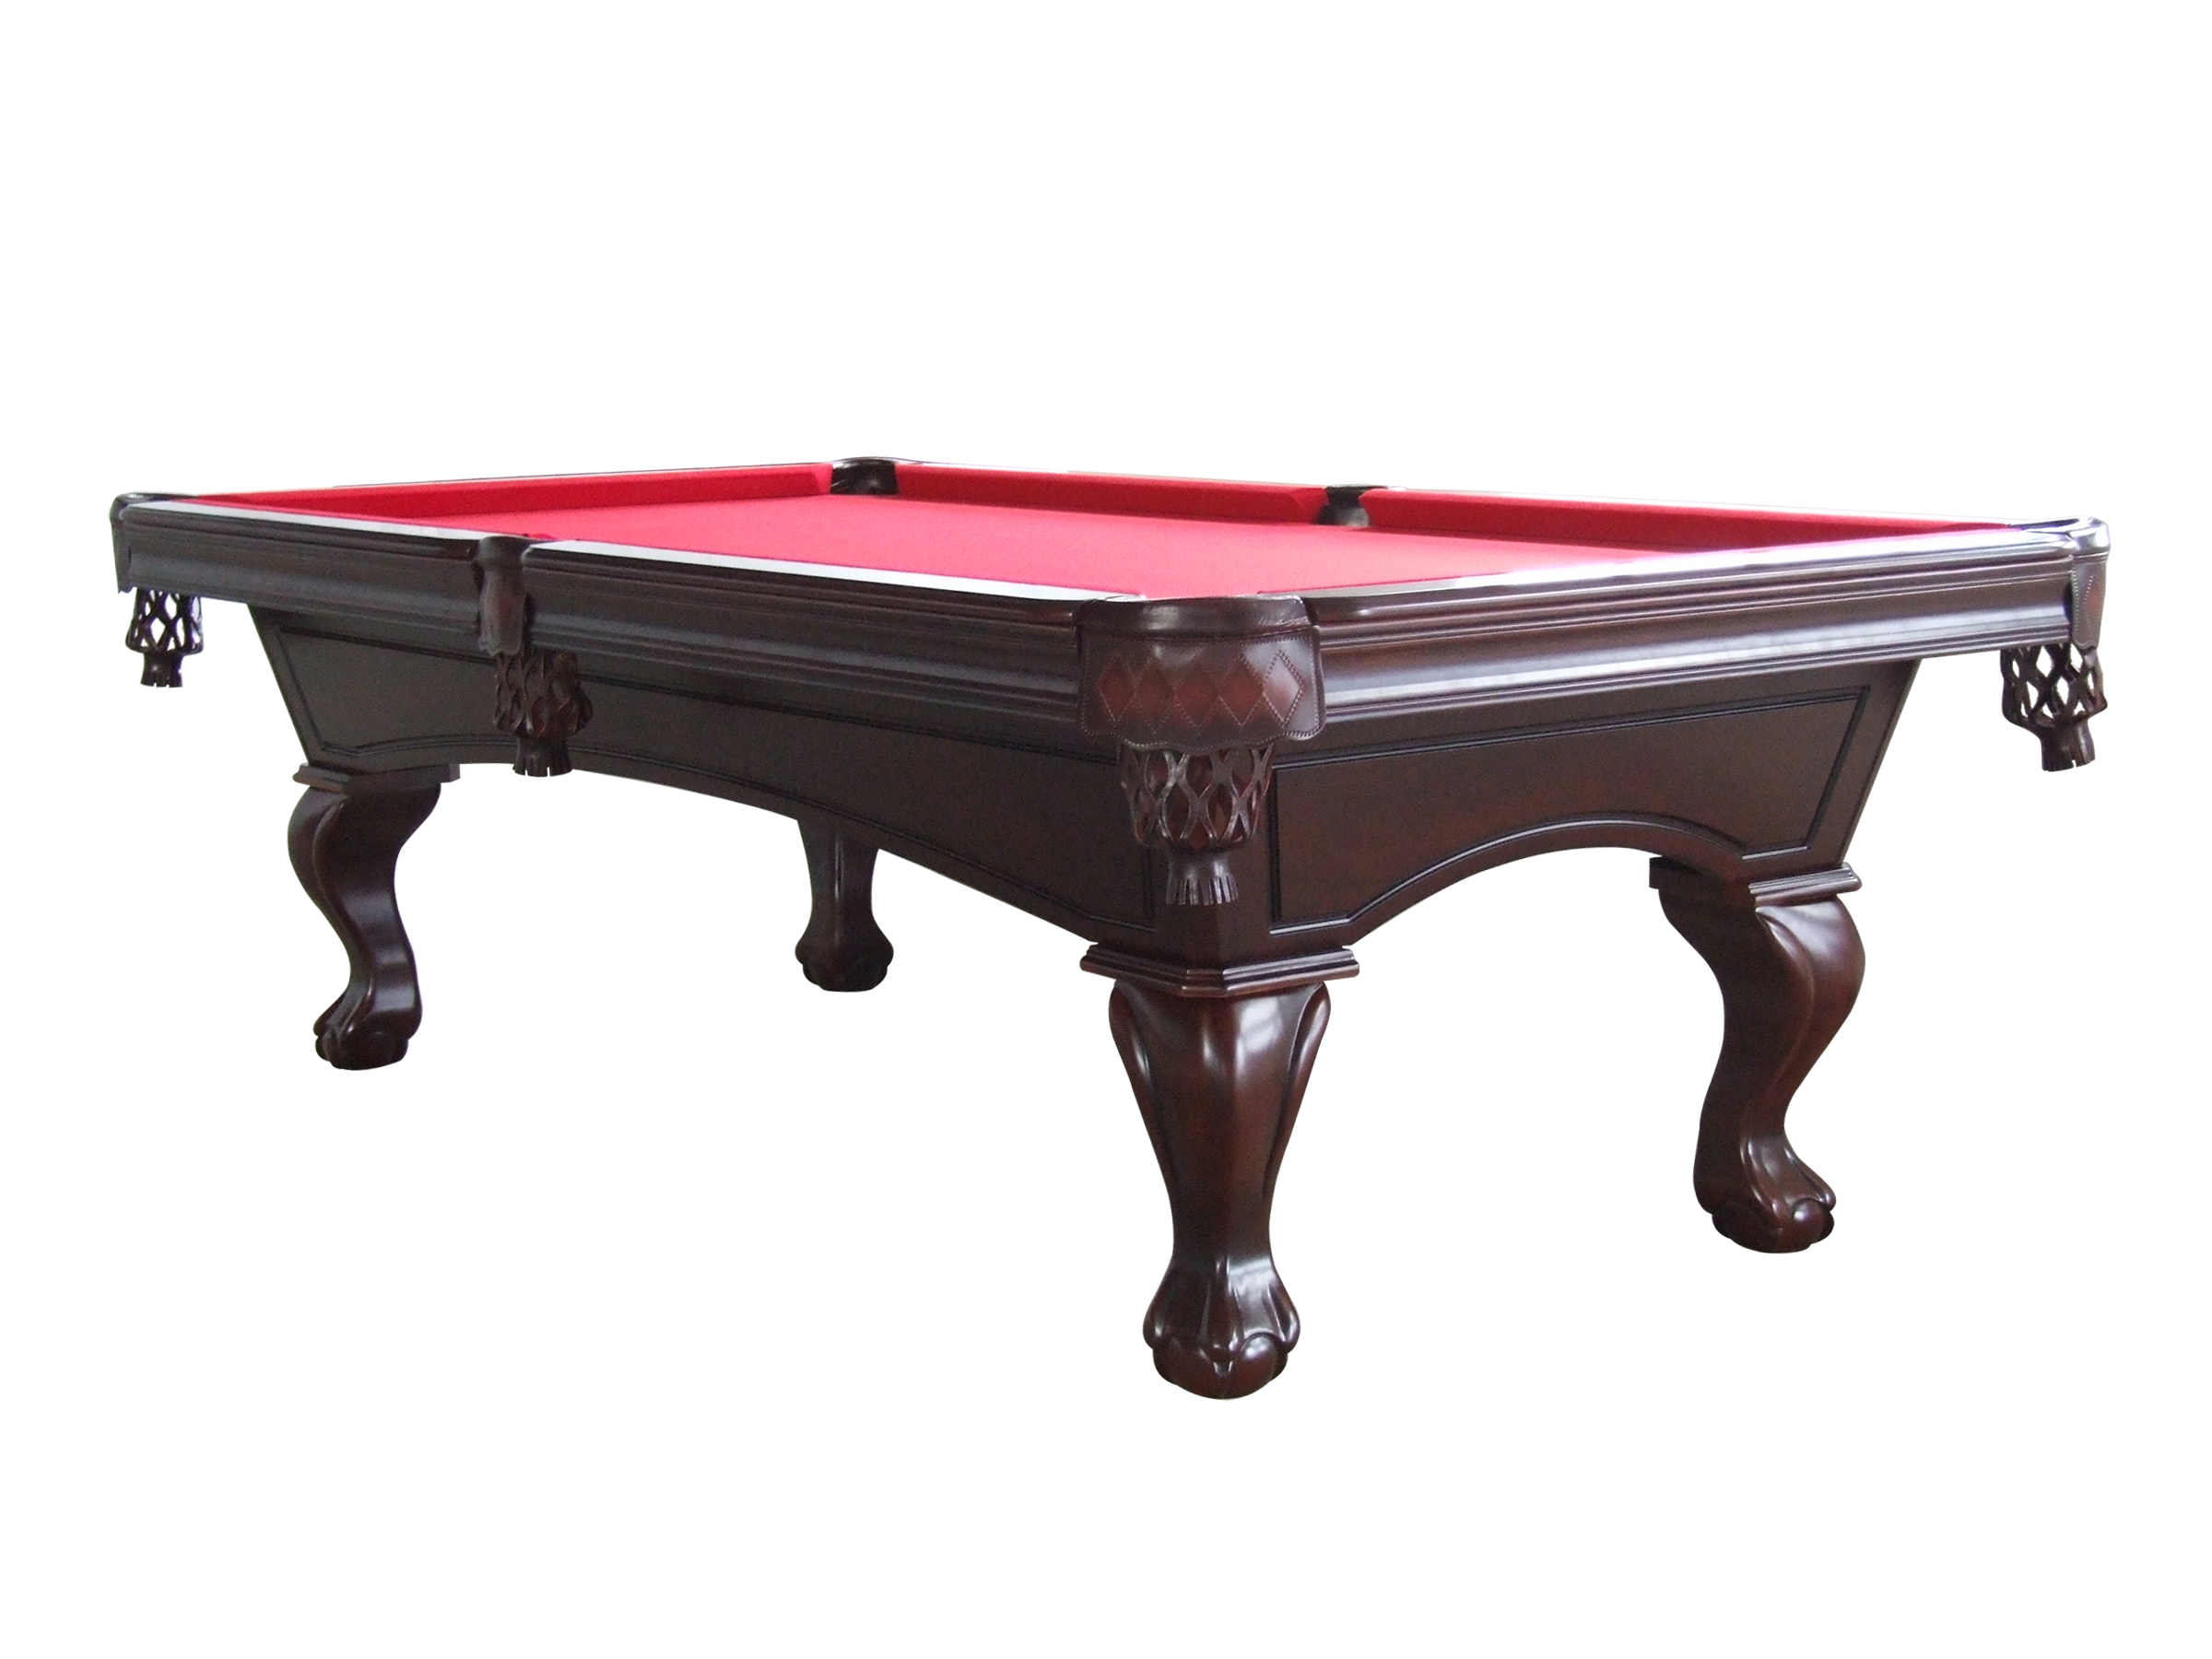 Elite Series Vintage pool table